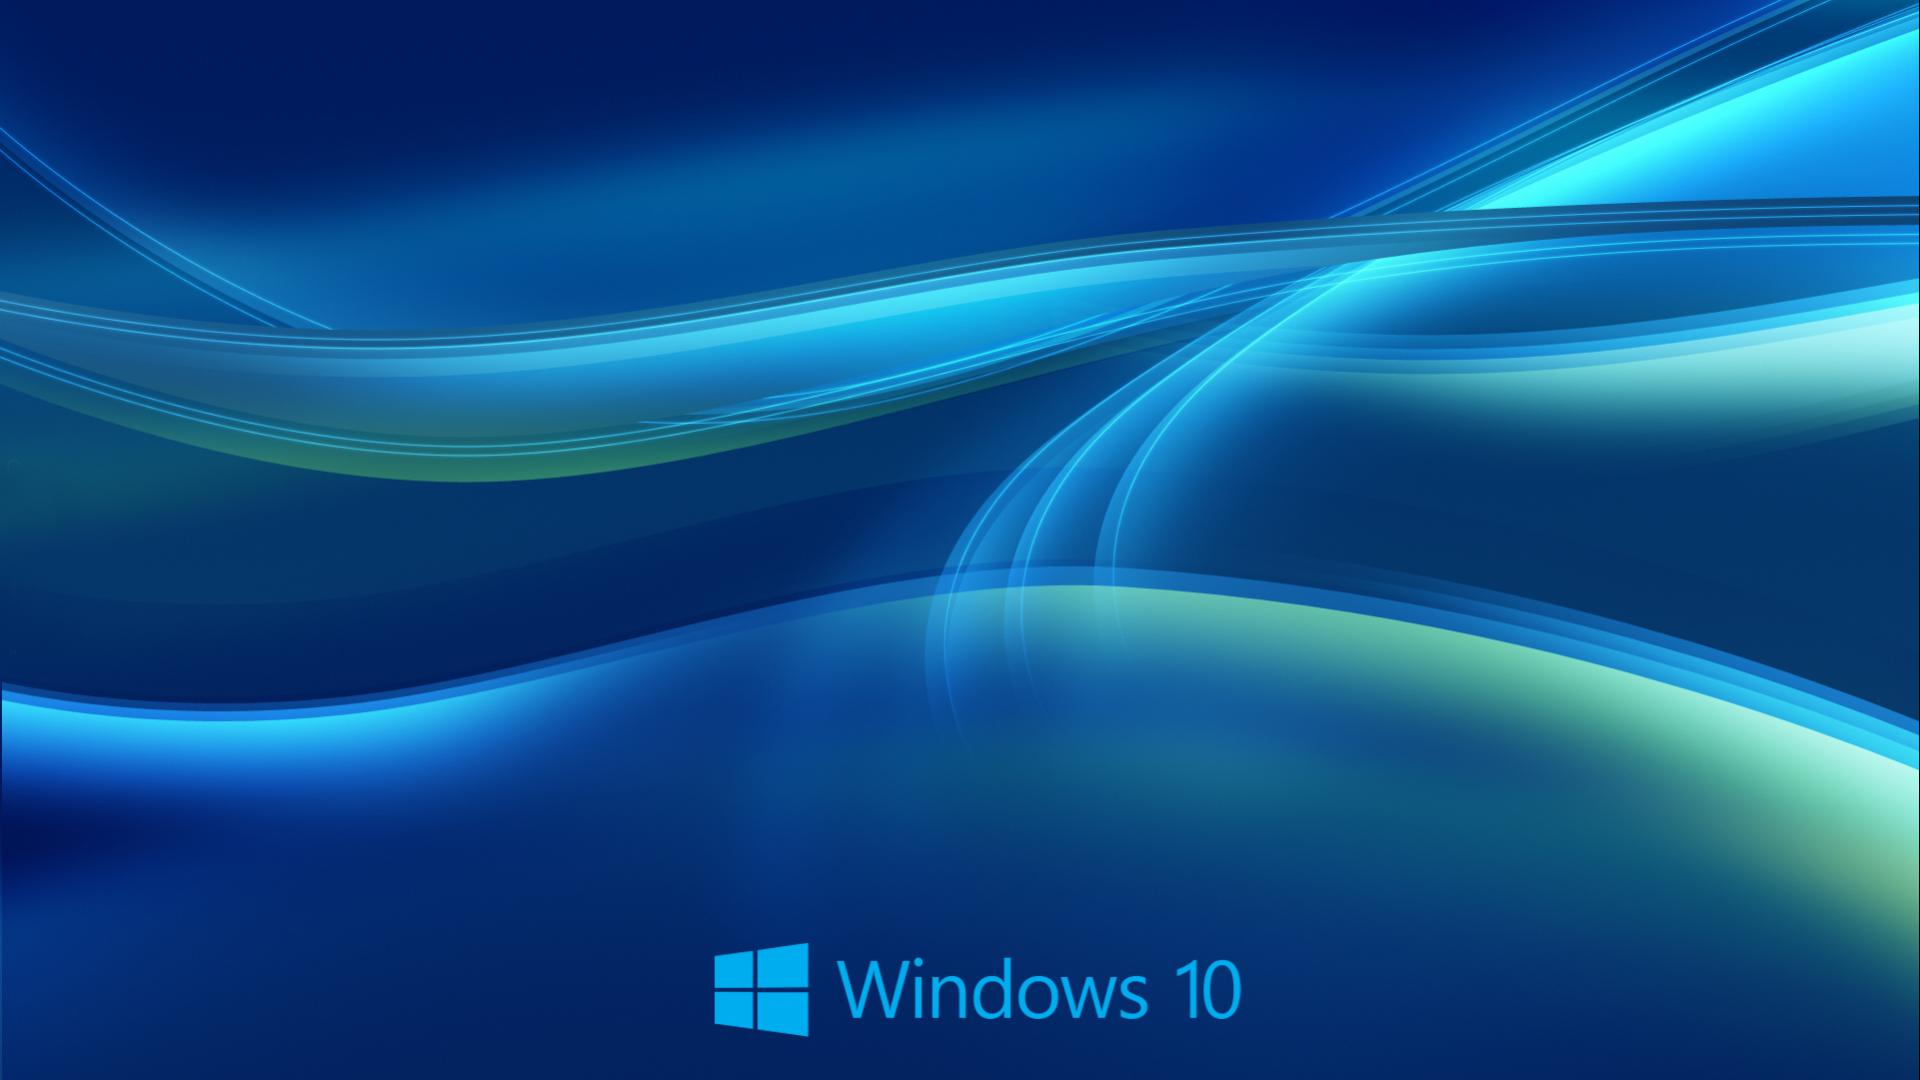 hd blue lines beautiful windows 10 wallpaper wallpaper